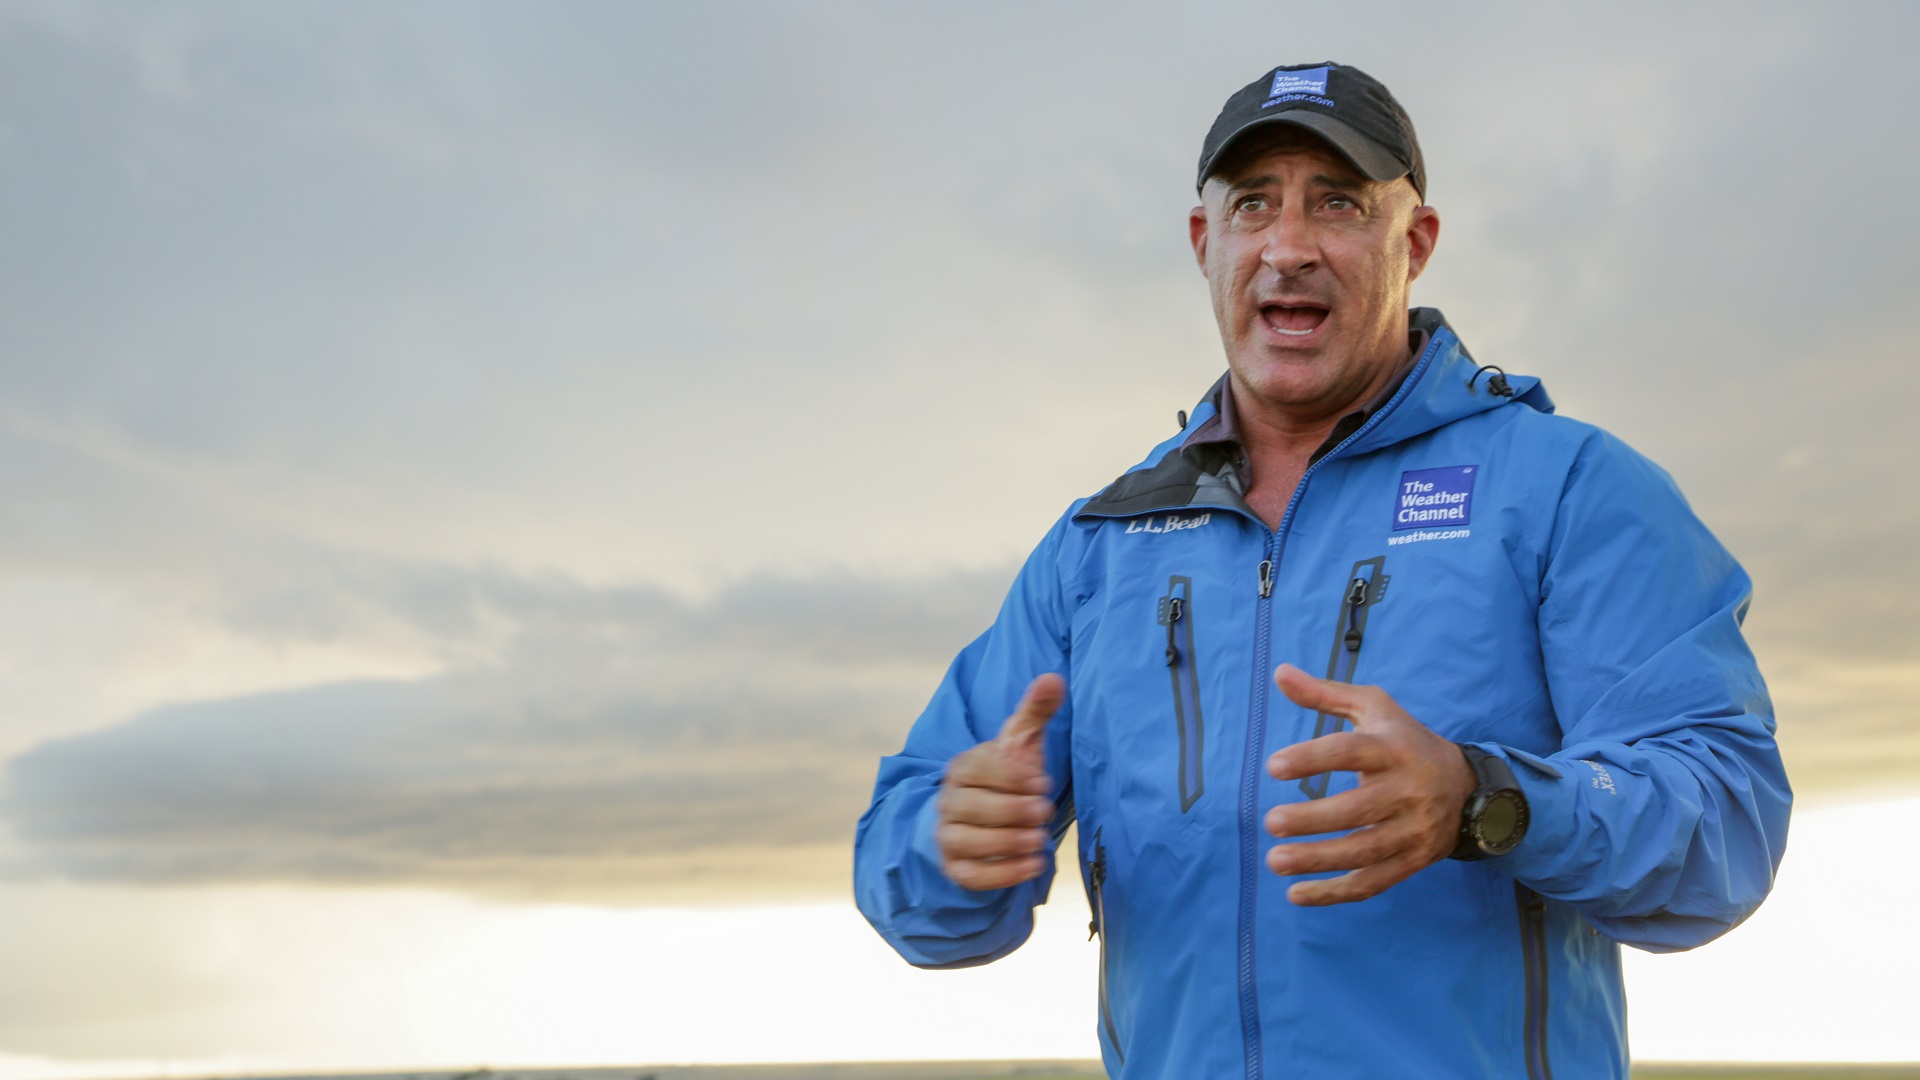 The Weather Channel's Jim Cantore covering severe weather in Oklahoma City, OK on May 9 _1539039822216-846652698